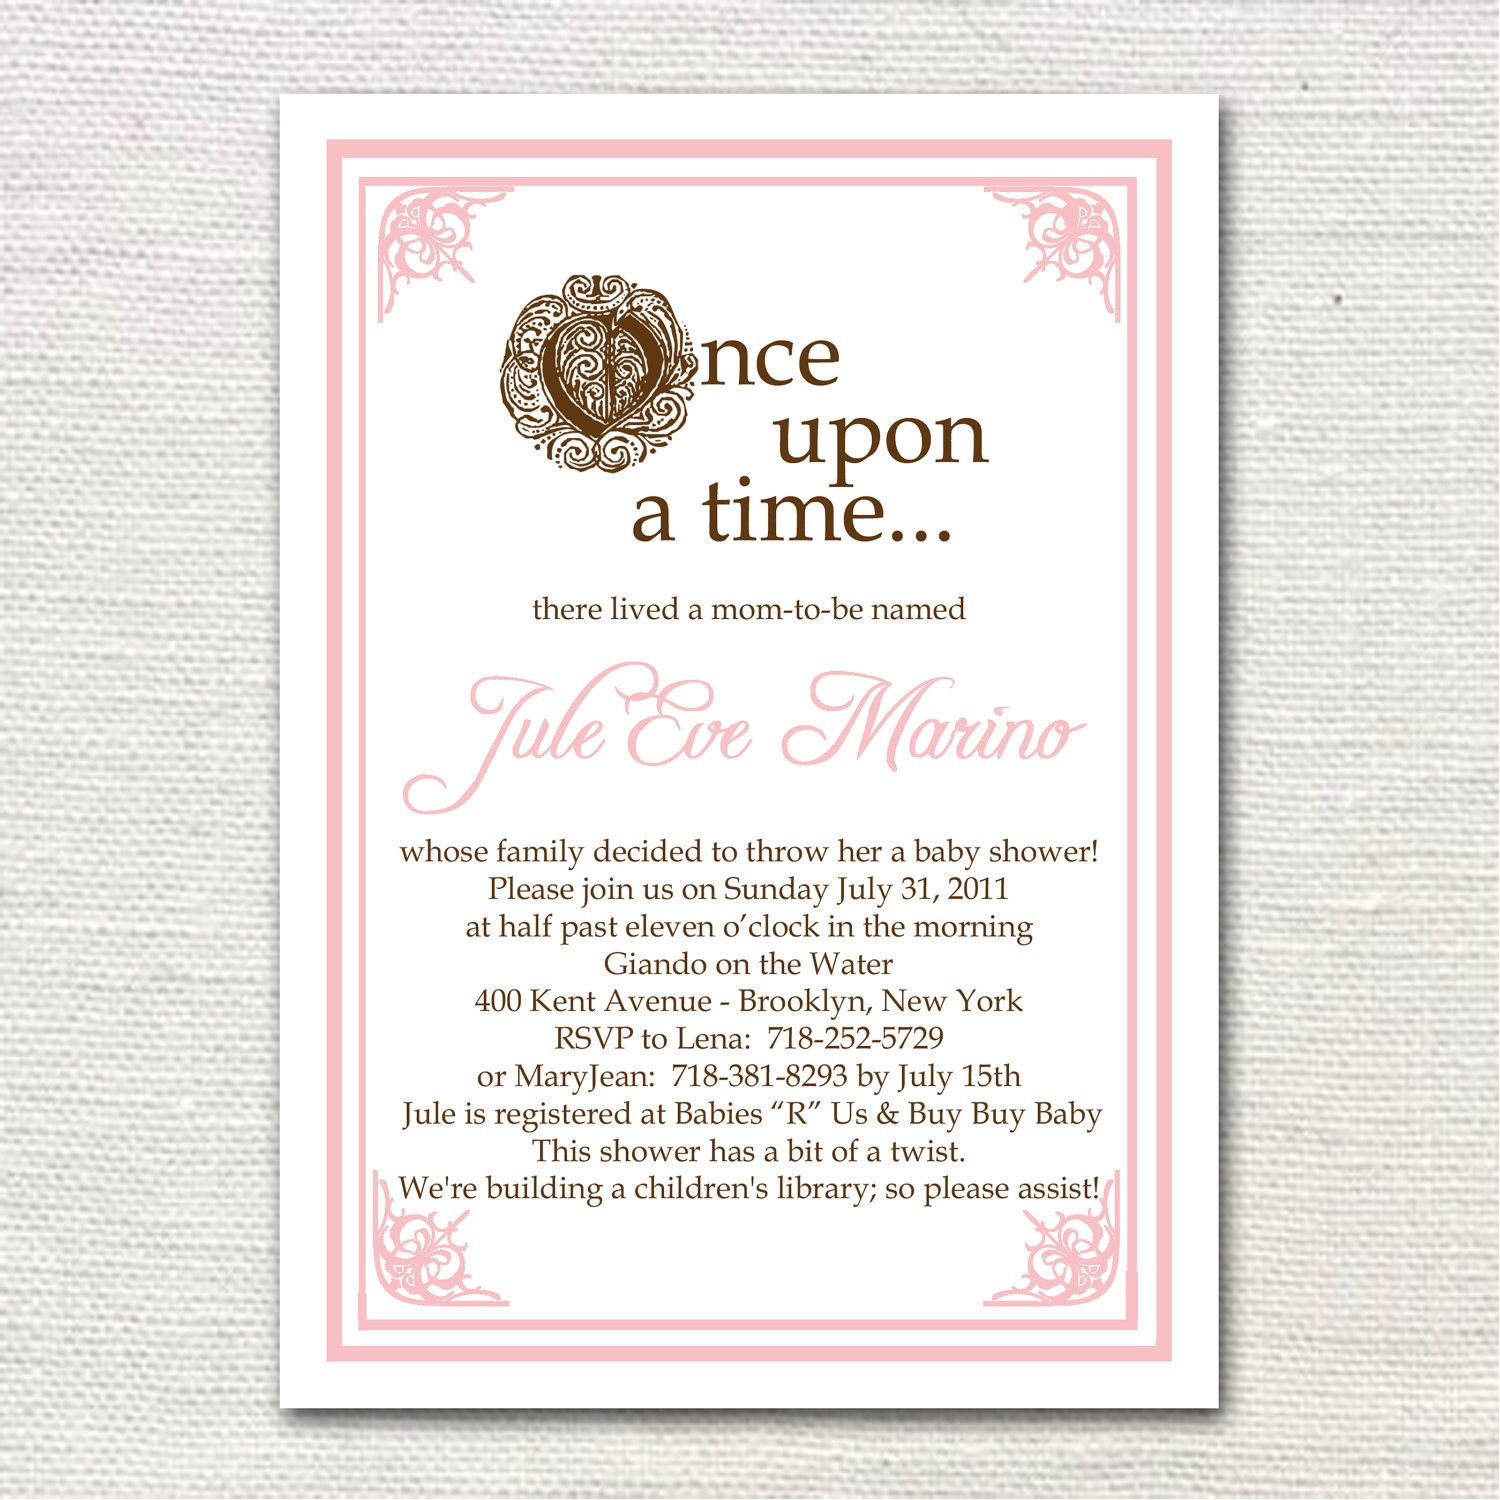 Once Upon A Time Baby Shower Invitation. $1.50, Via Etsy. | Hadleyu0027s Haven  | Pinterest | Shower Invitations, Babies And Boy Baby Showers